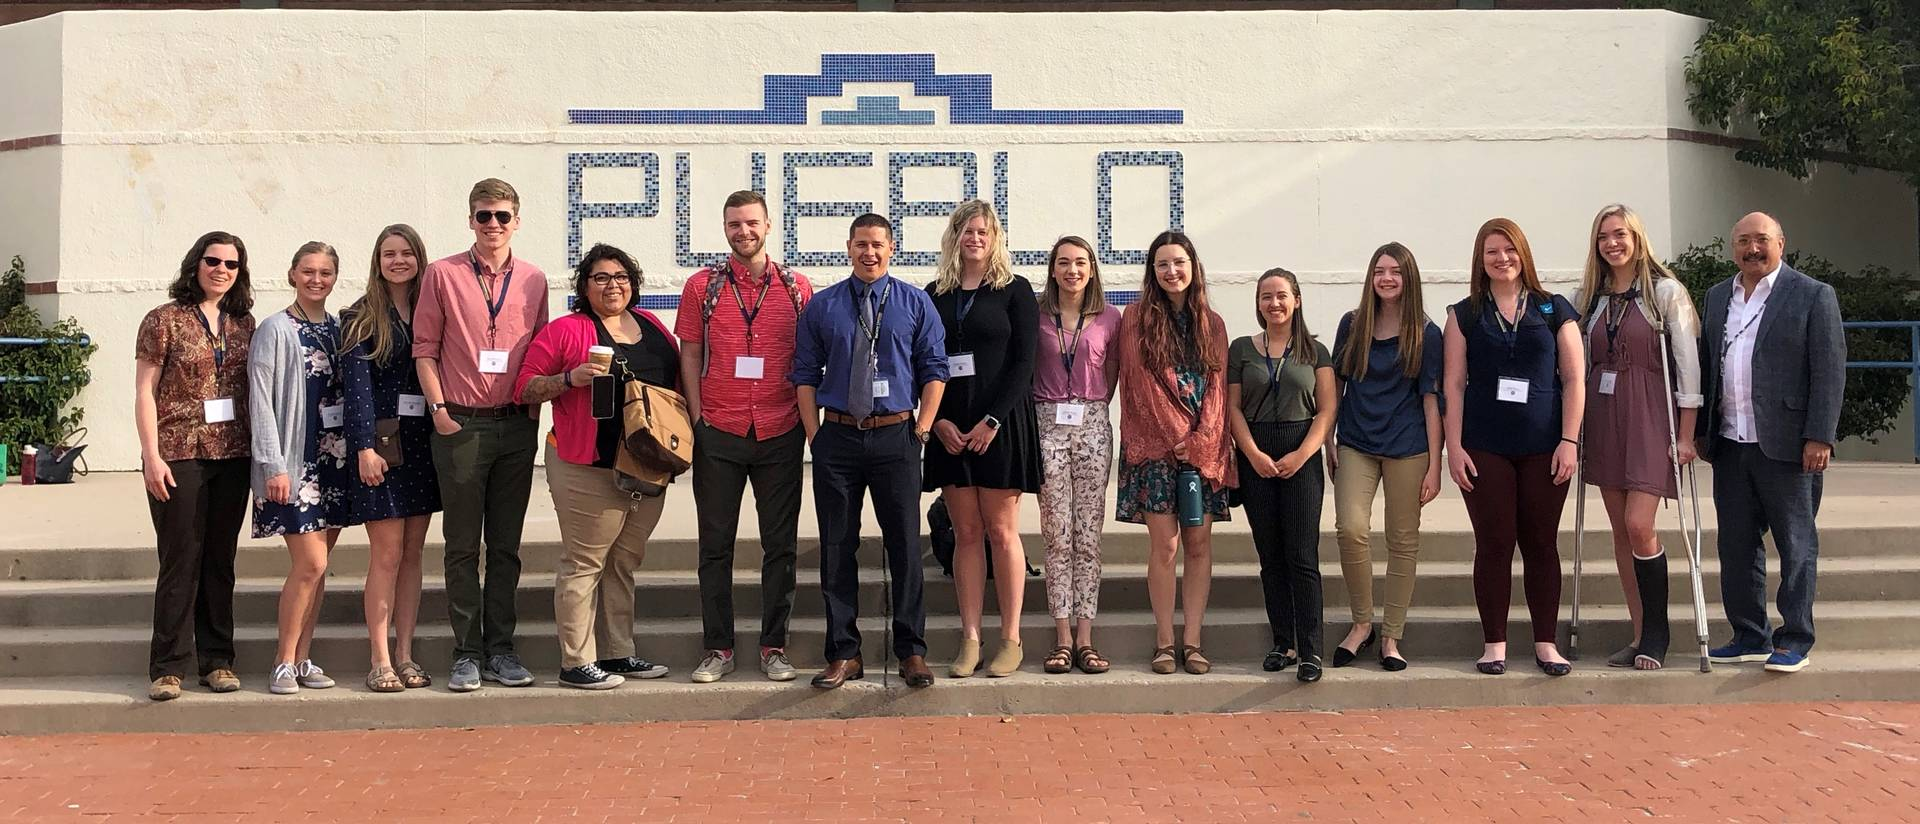 Education studies students in Tucson for immersion abotu culturally responsive teaching